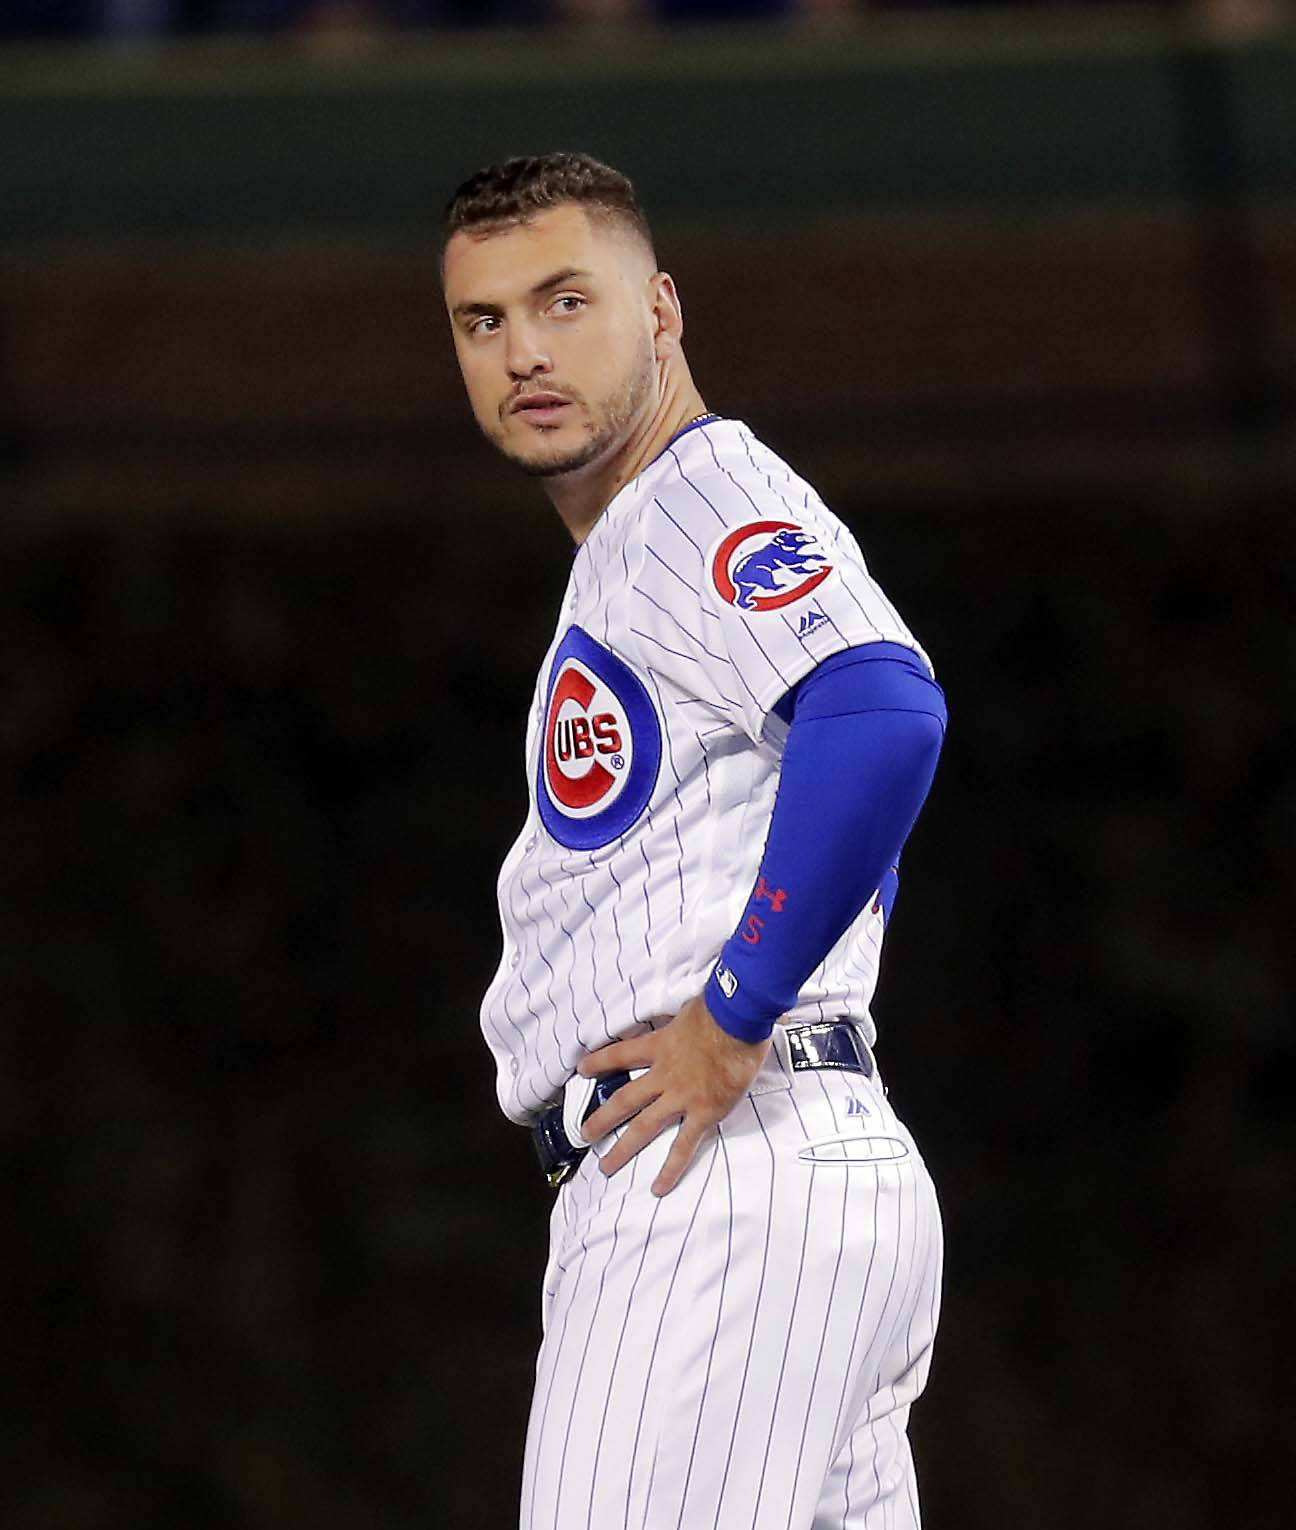 Rozner: Cubs' Almora has earned chance to play every day